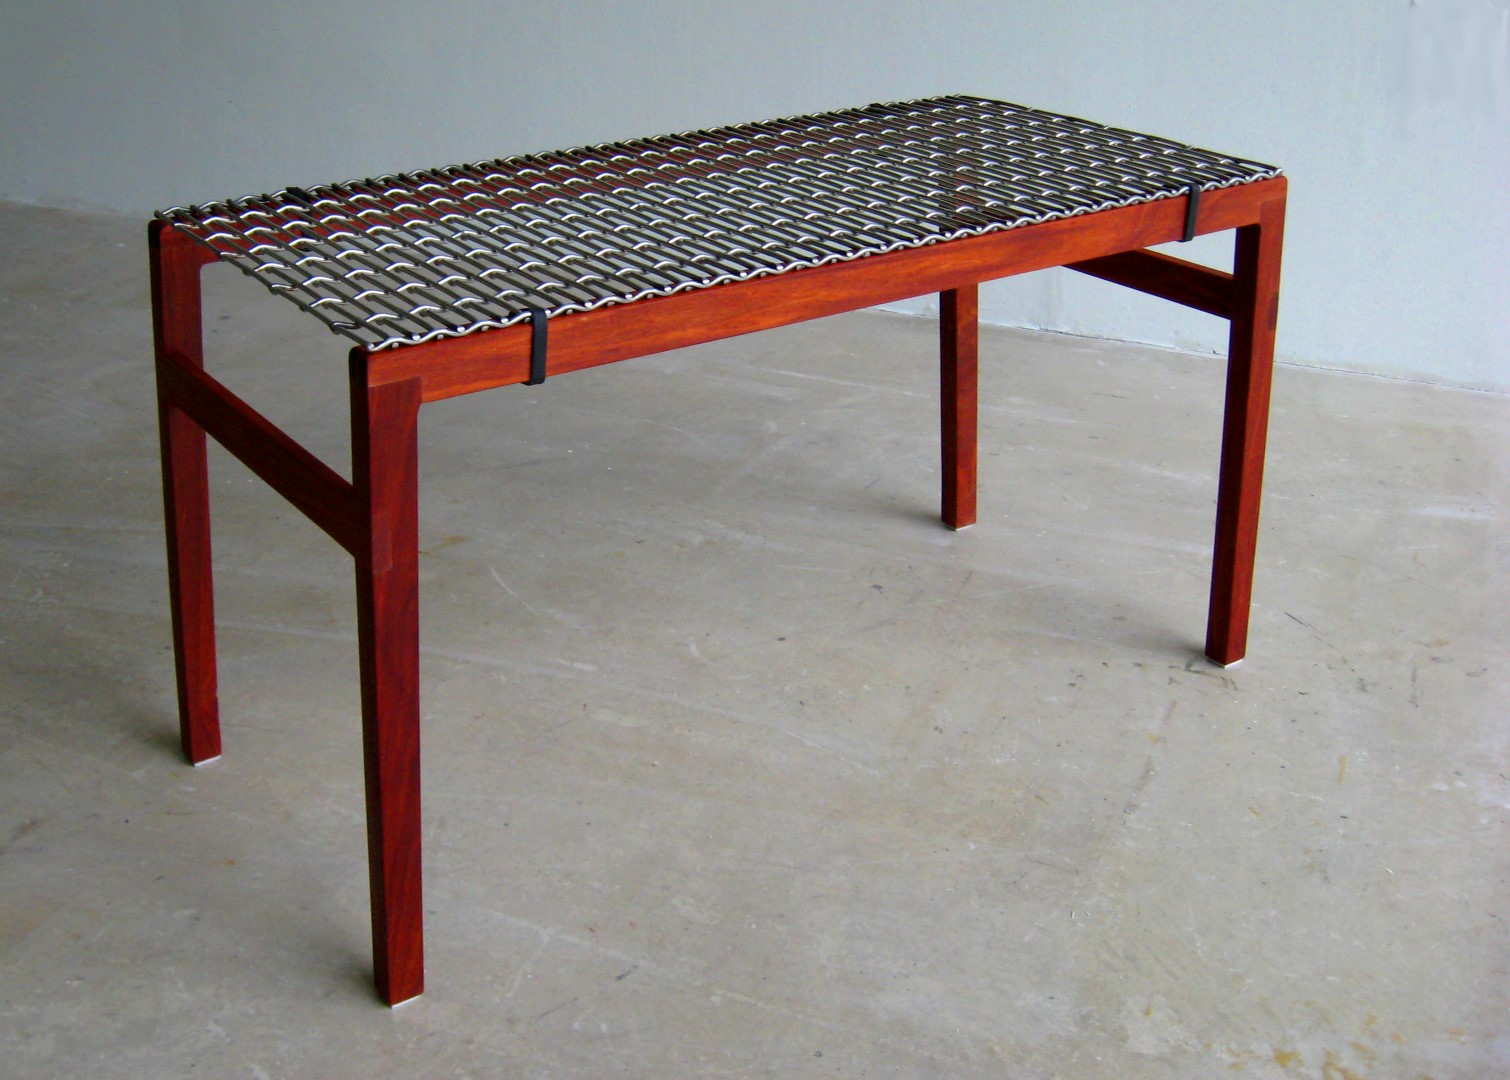 Wood, leather and metal combine form an elegant and sophisticated bench.